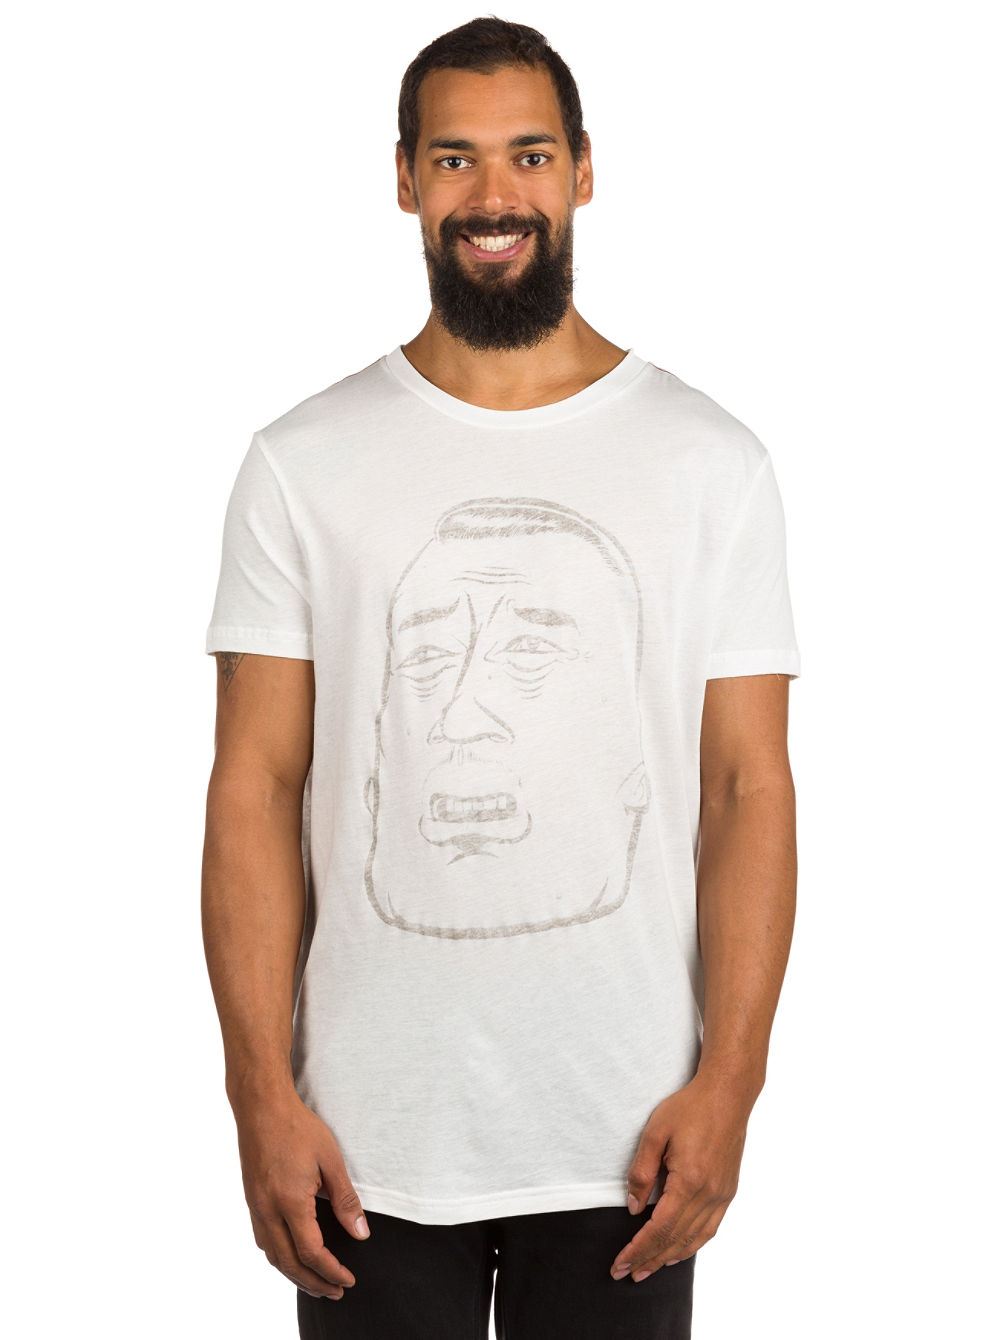 Barry II T-Shirt